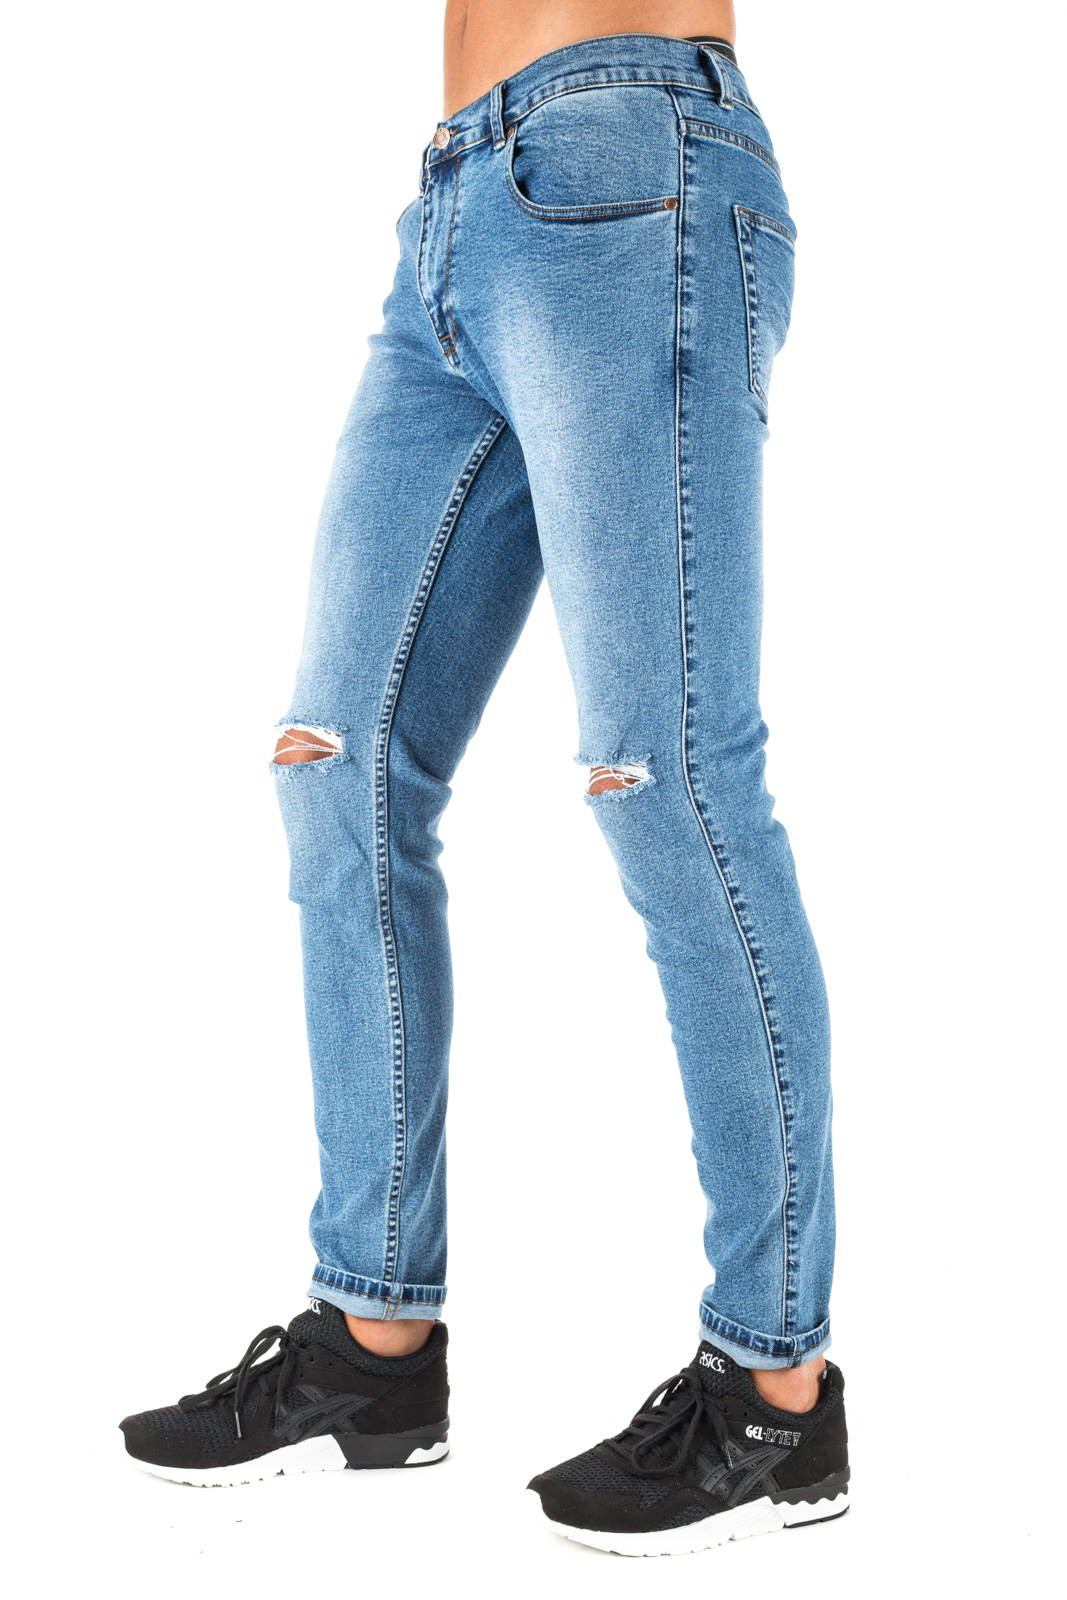 Dr. Denim - Skinny Clark Jeans with Cuts